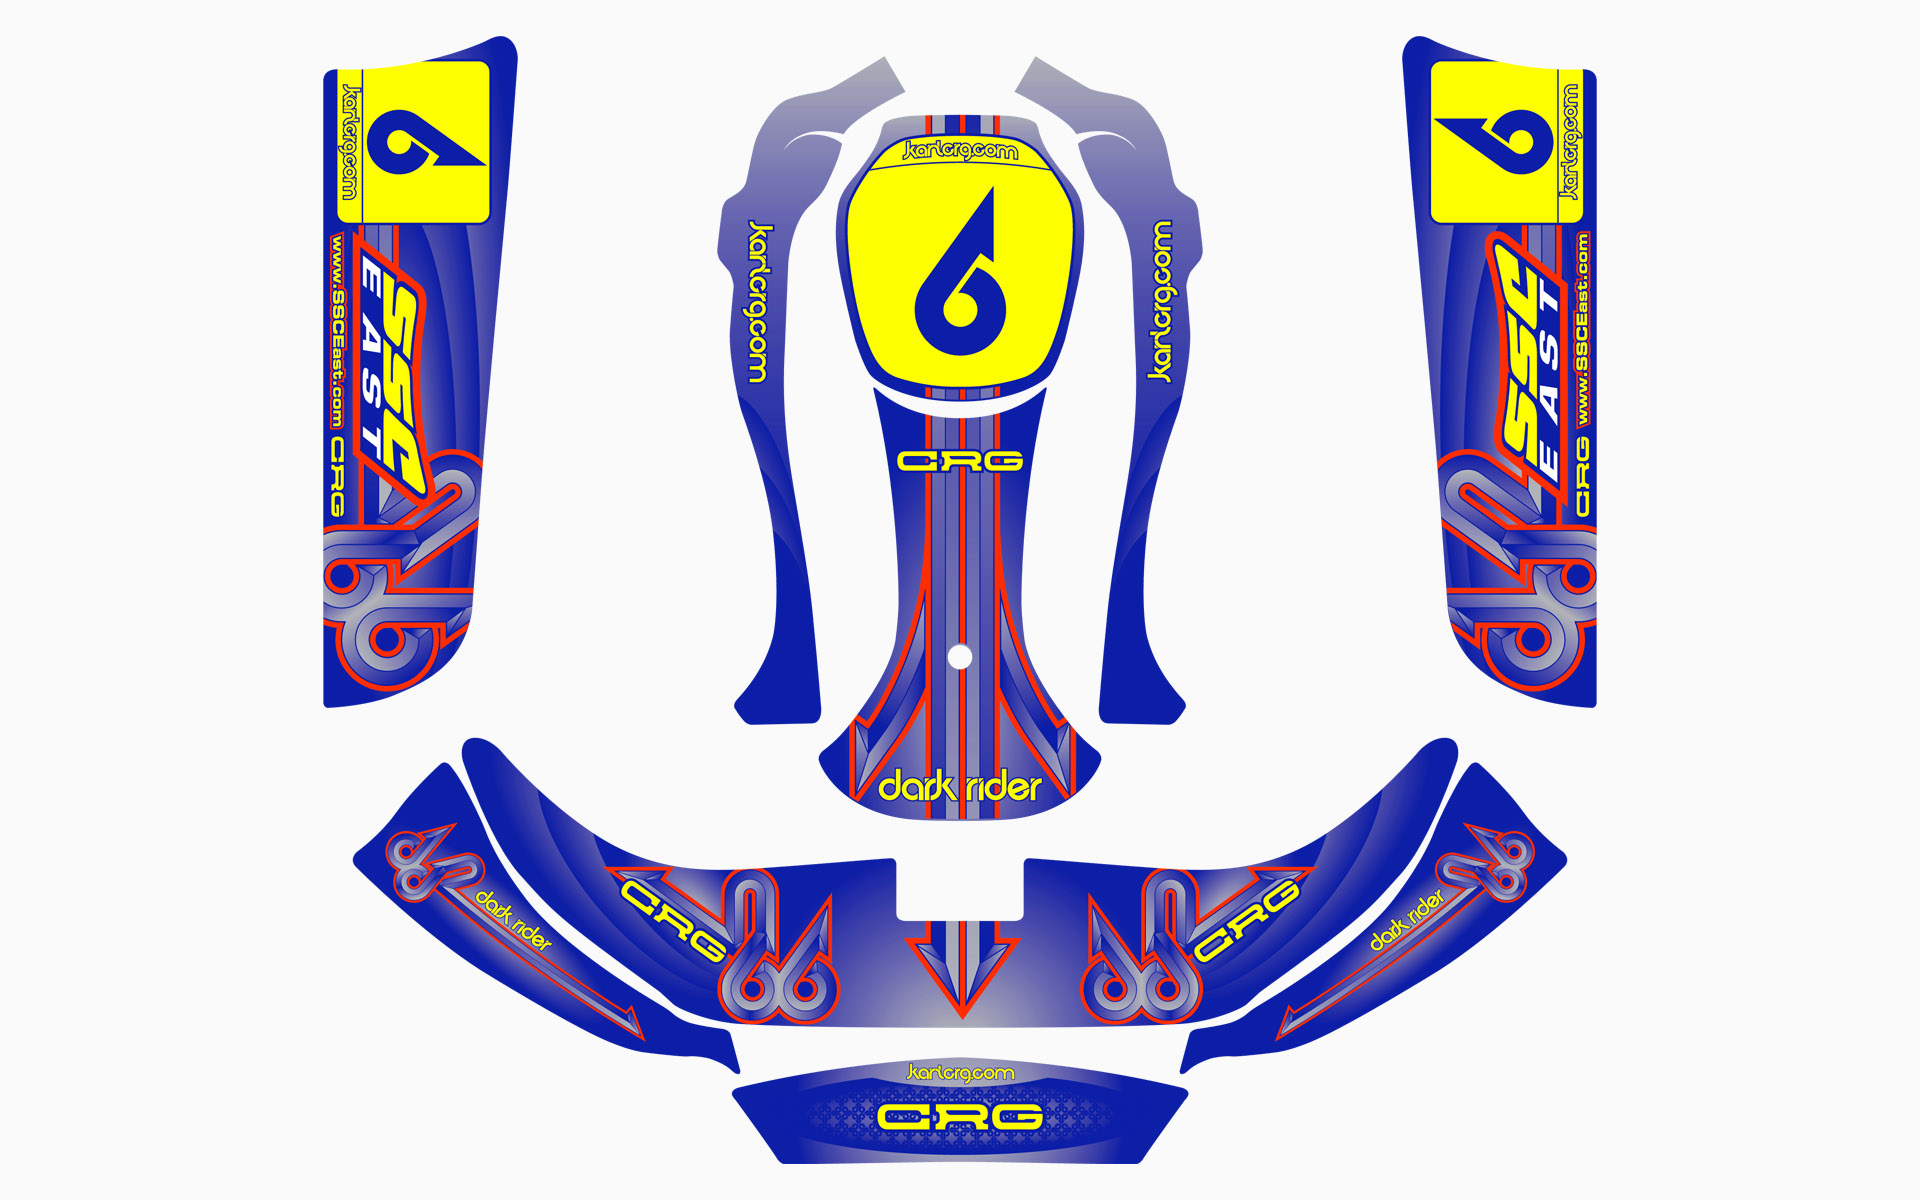 CRG Dark Rider Customer Kart Livery Decal Kit